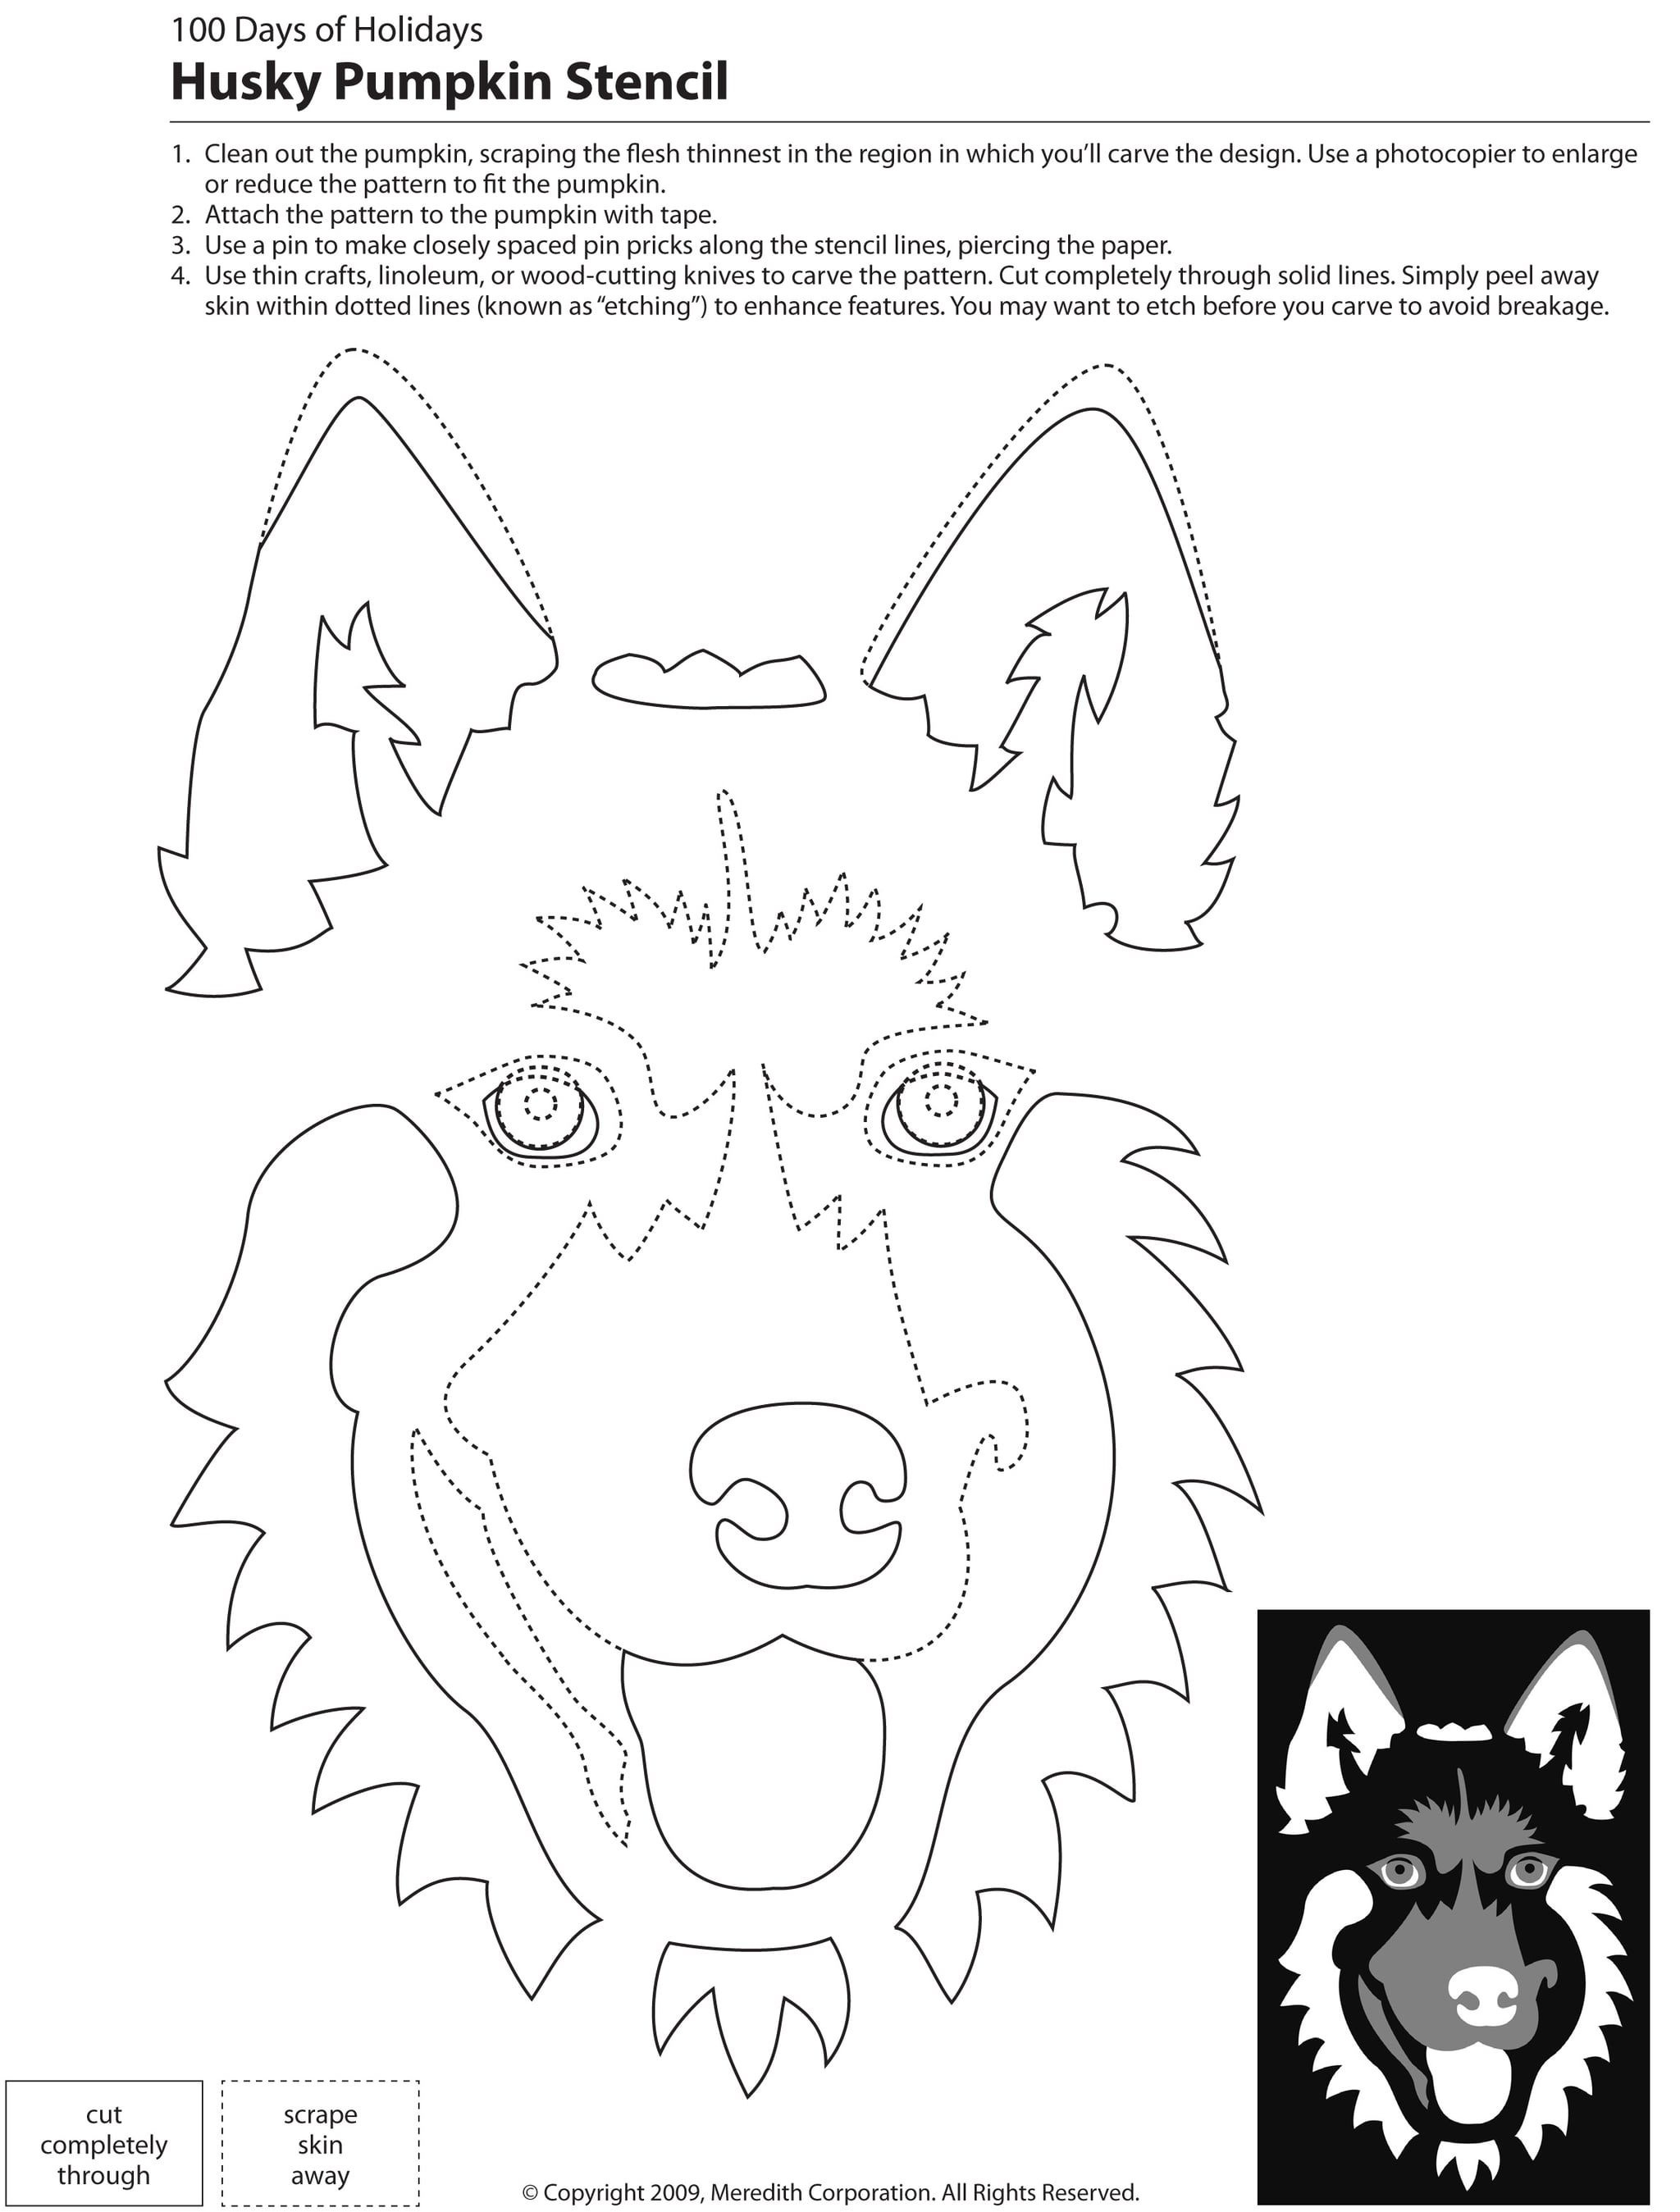 22 Free Pumpkin Carving Dog Stencils (Breed Specific) | Holidays - Free Printable Pumpkin Carving Templates Dog